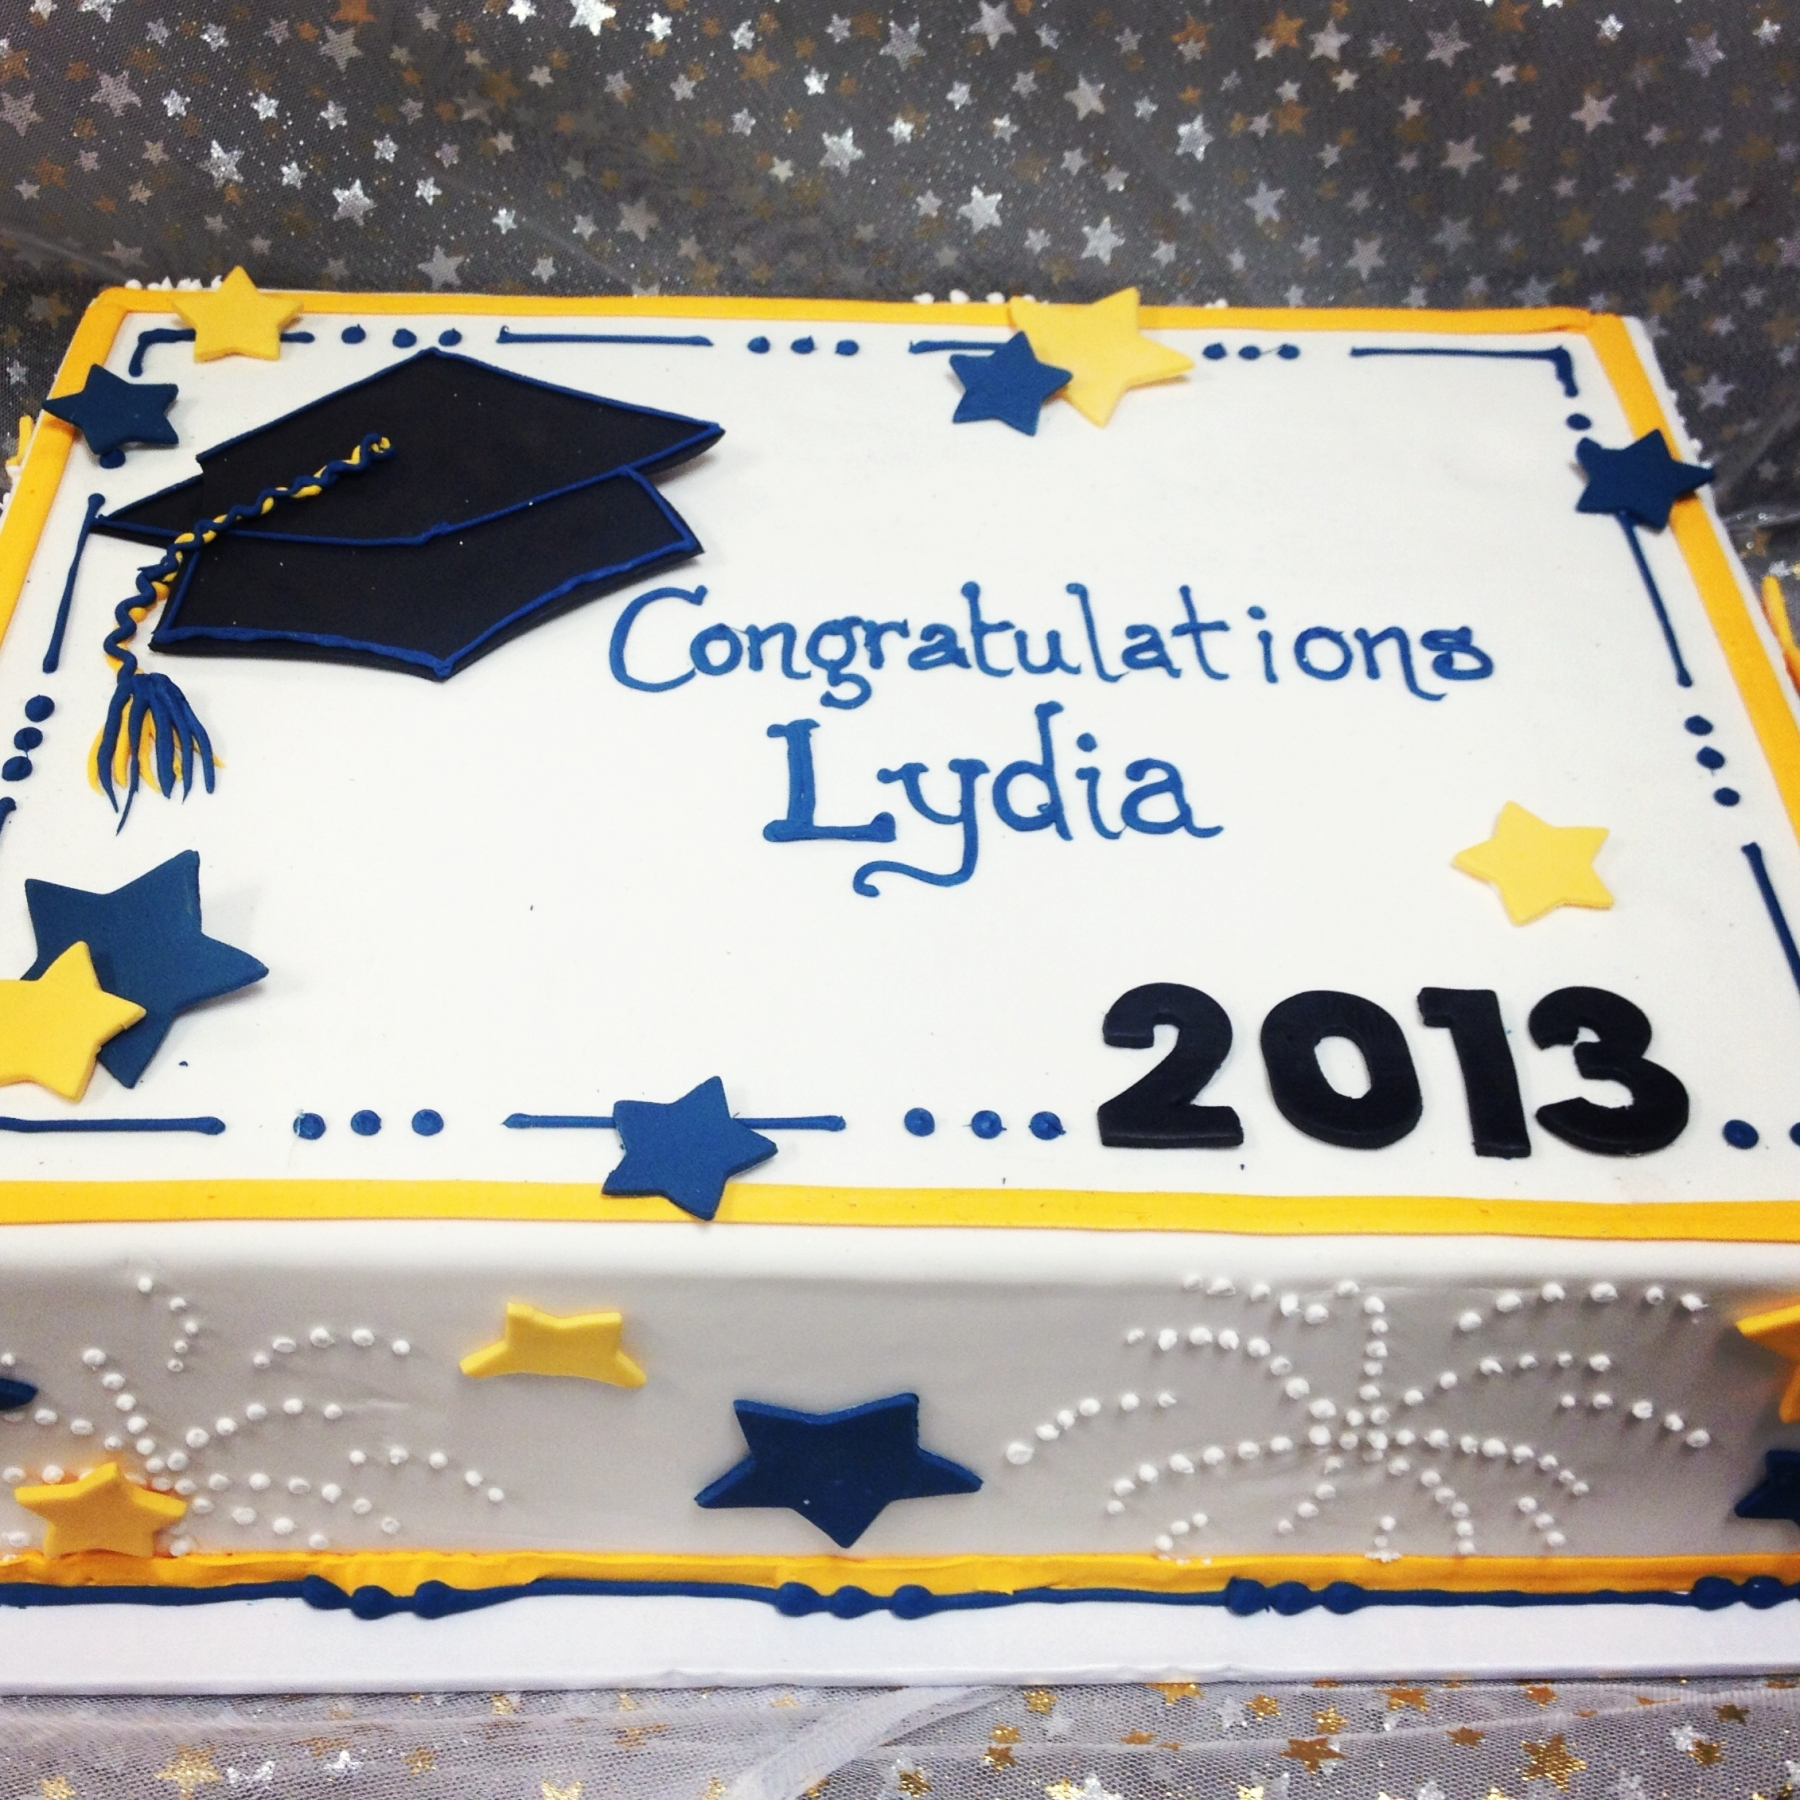 Cake Design Graduation : Graduation Theme on Pinterest Graduation Cake ...